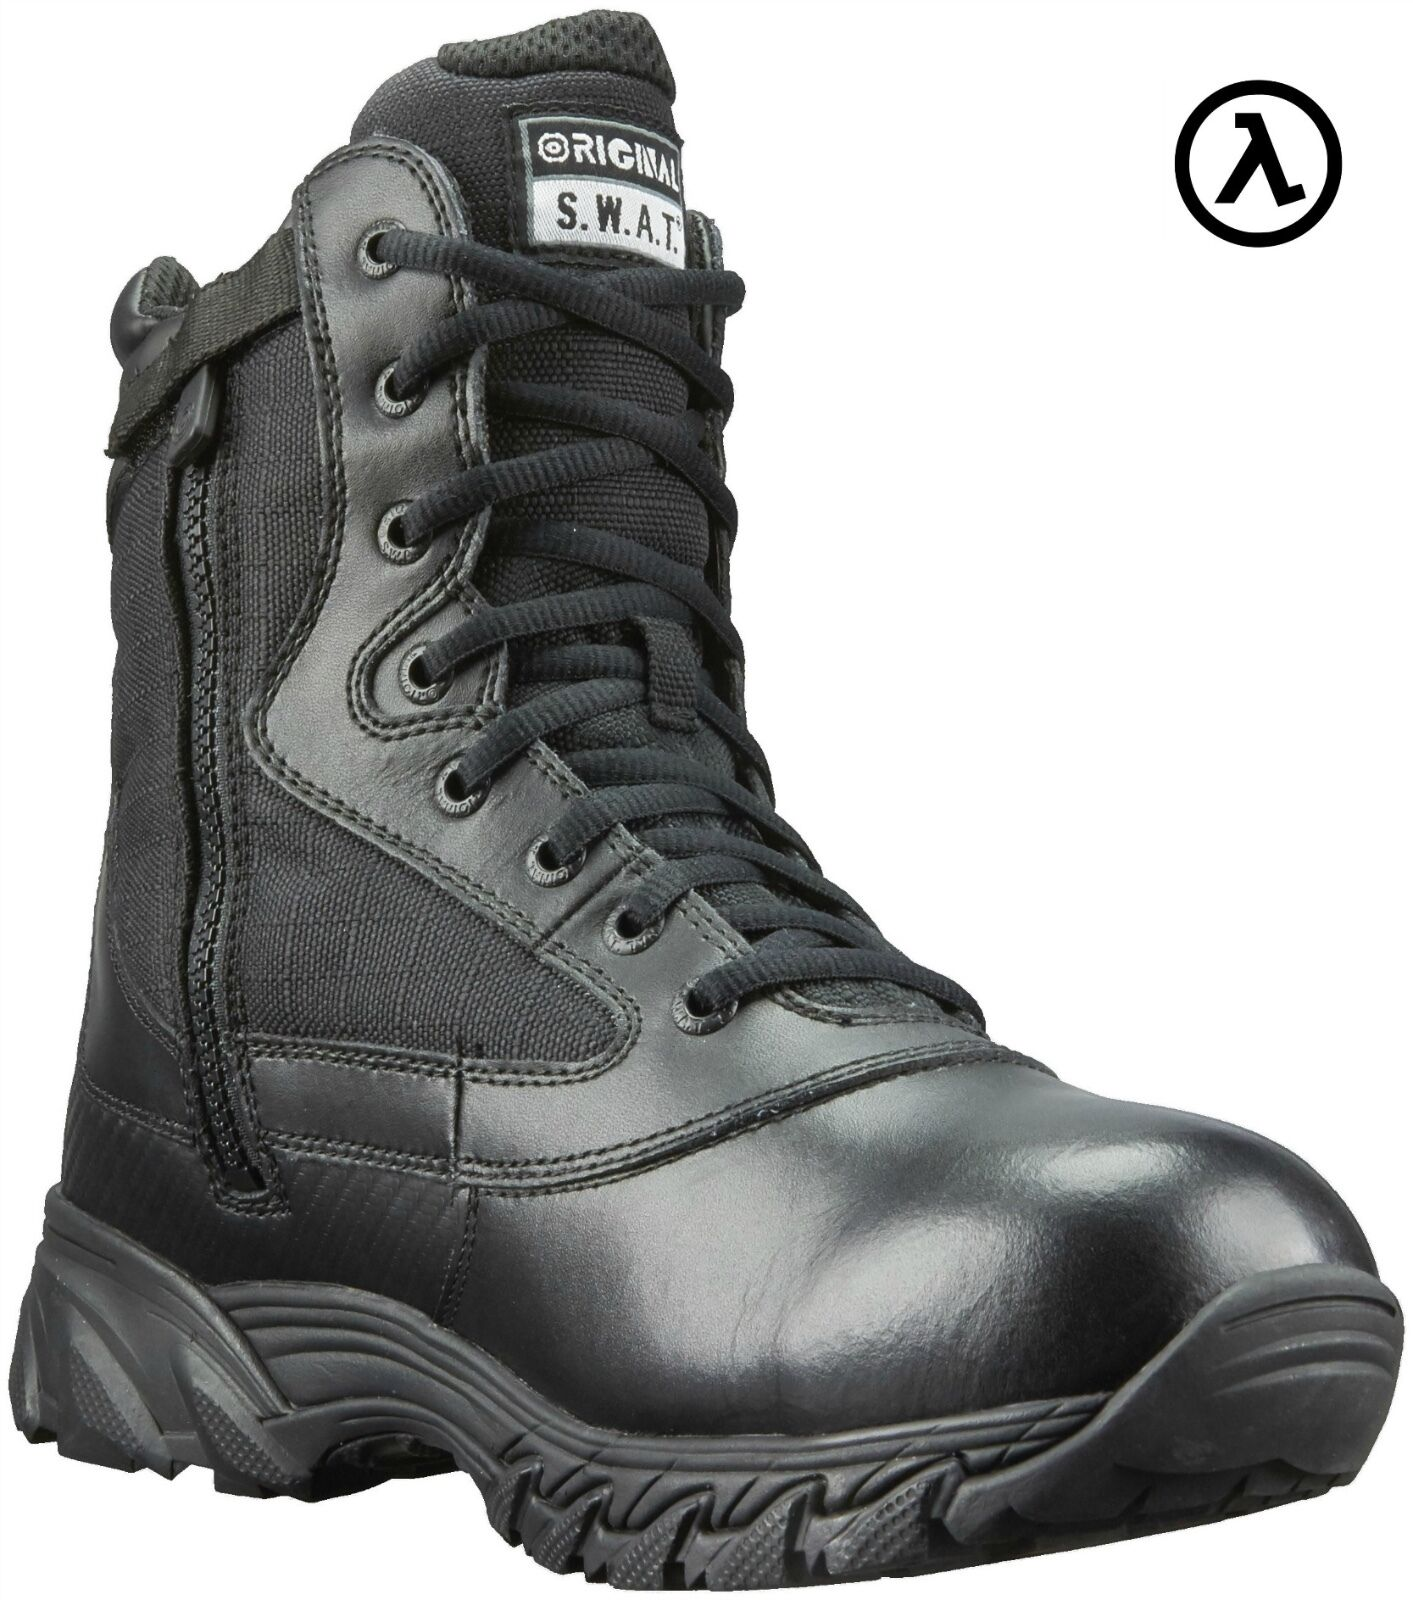 c4c44fa9 BOOTS MENS ZIP 9 CHASE SWAT ORIGINAL 131201 SIDE NEW - SIZES ALL ...